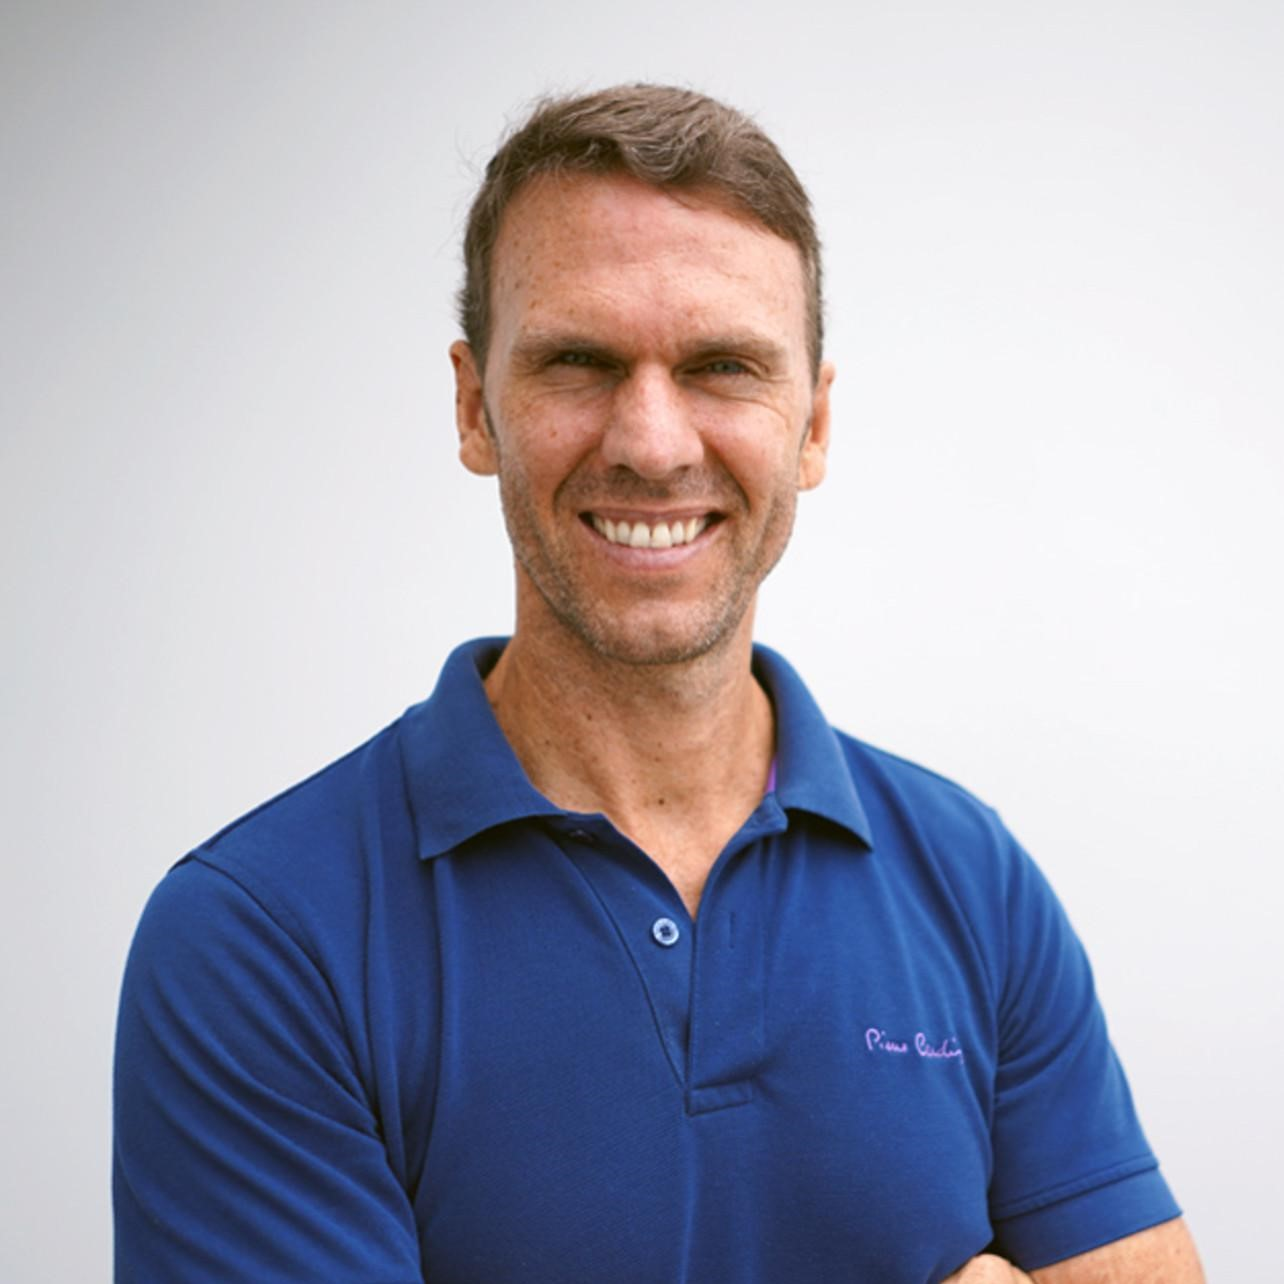 CraigHEALTH & NUTRITION COACH